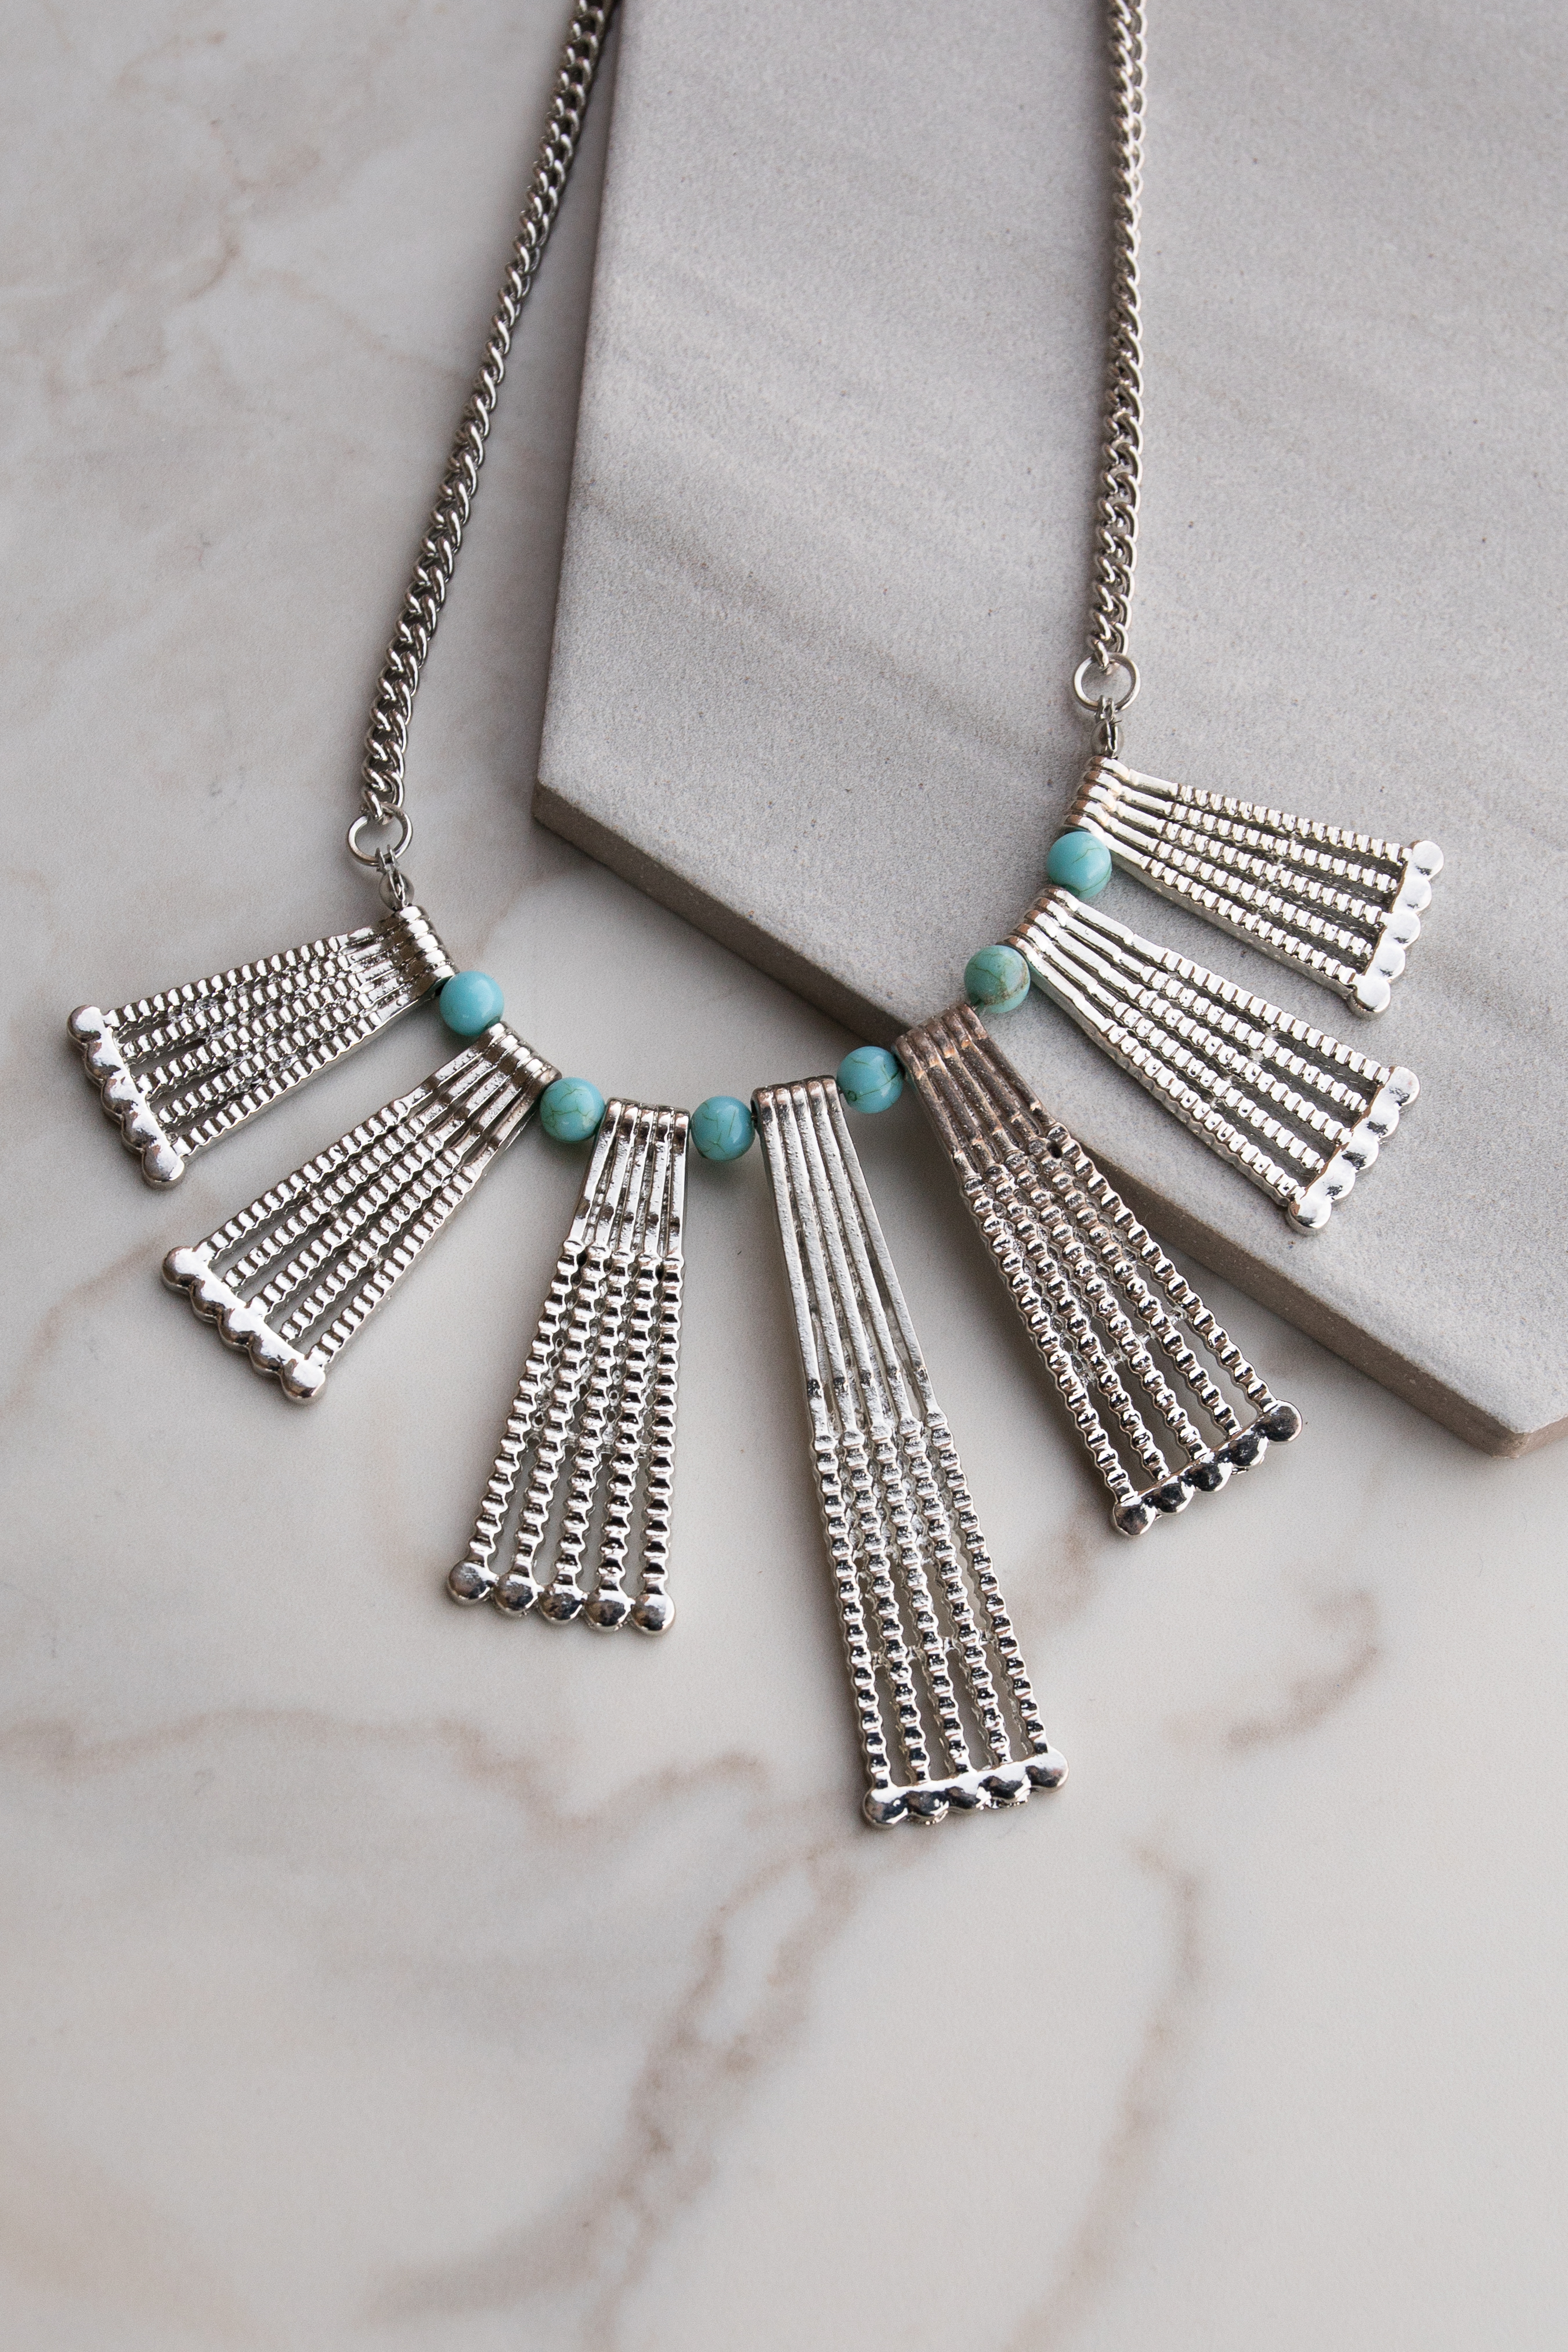 Silver Statement Necklace With Turquoise Bead Details